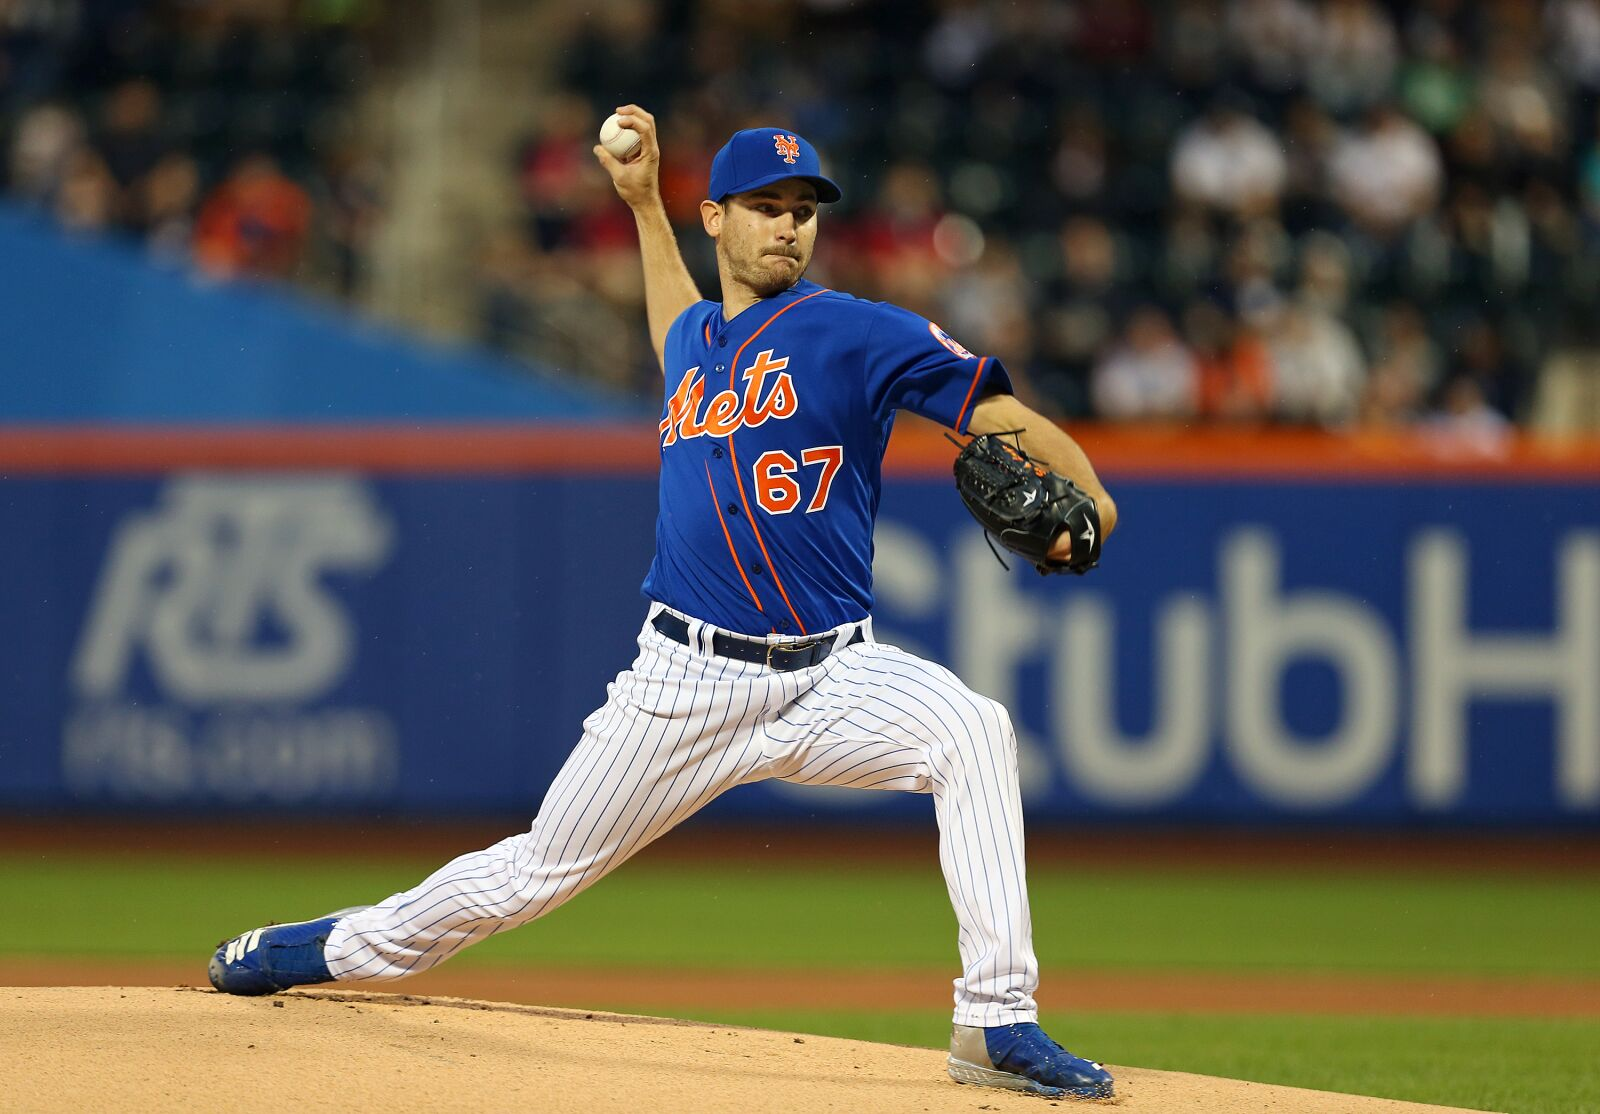 New York Mets: Can Seth Lugo be the Club's Left-Handed Specialist?